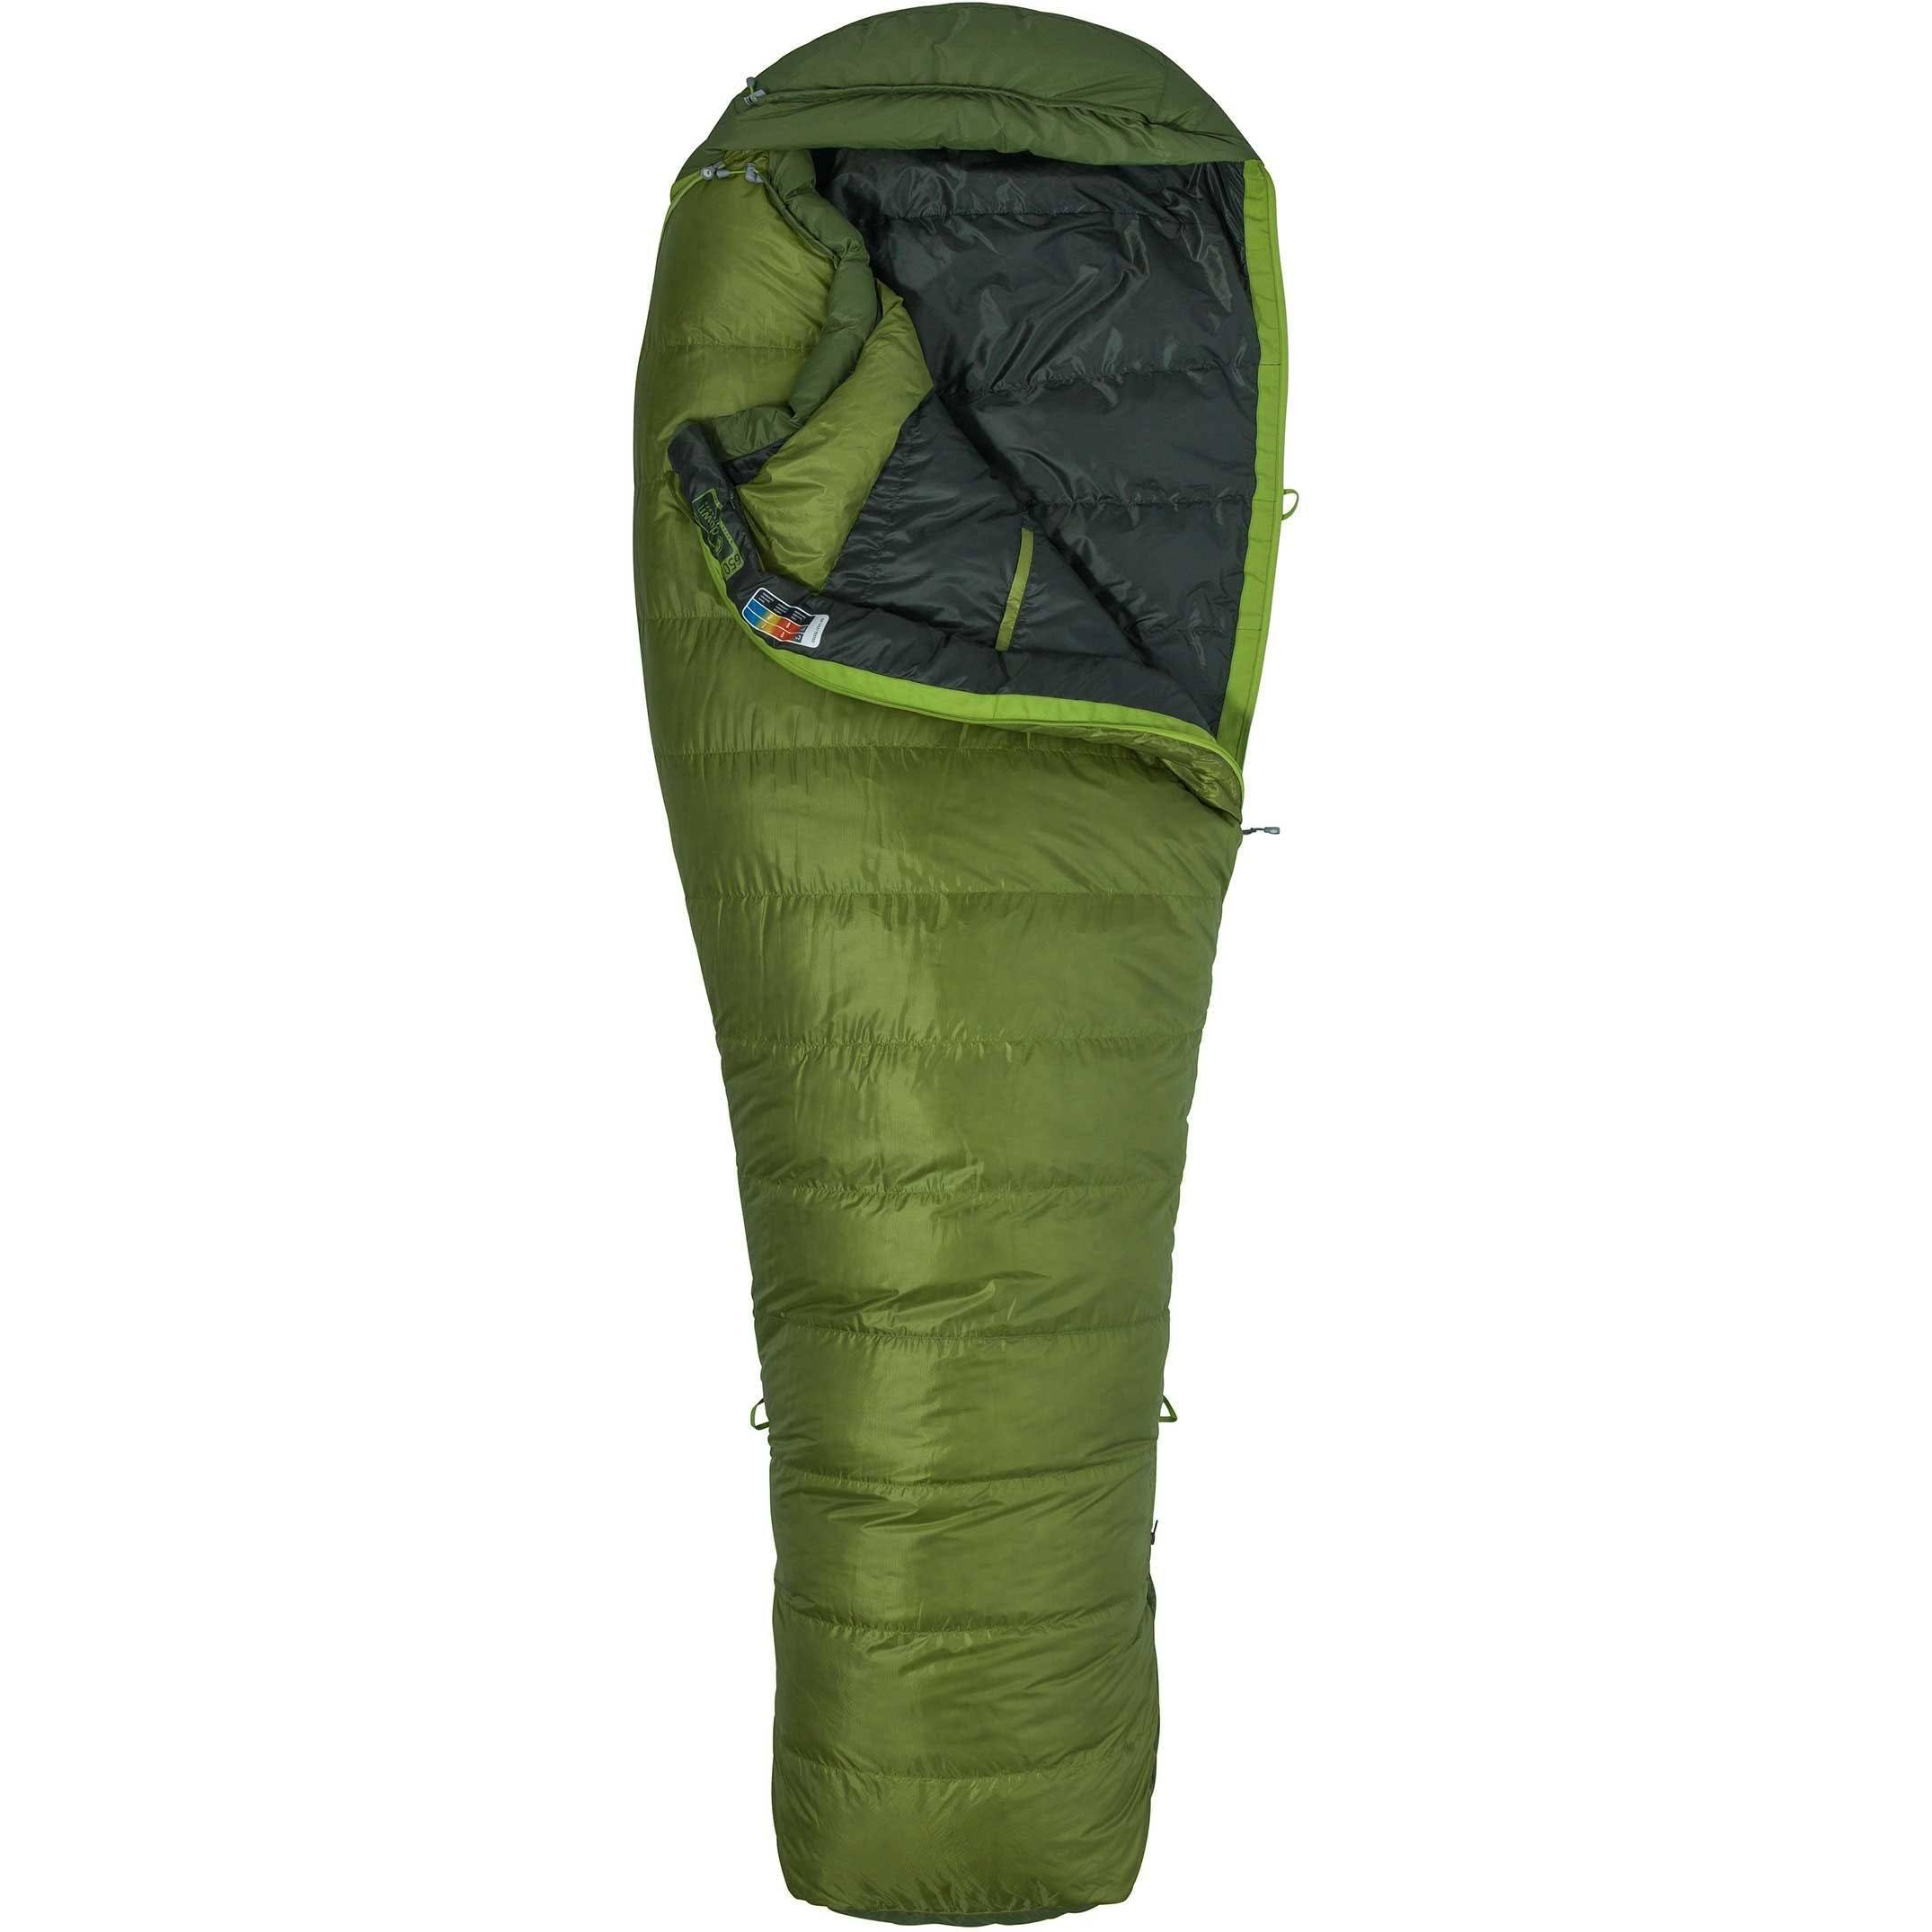 Marmot Never Winter Sleeping Bag - Cilantro Tree Green